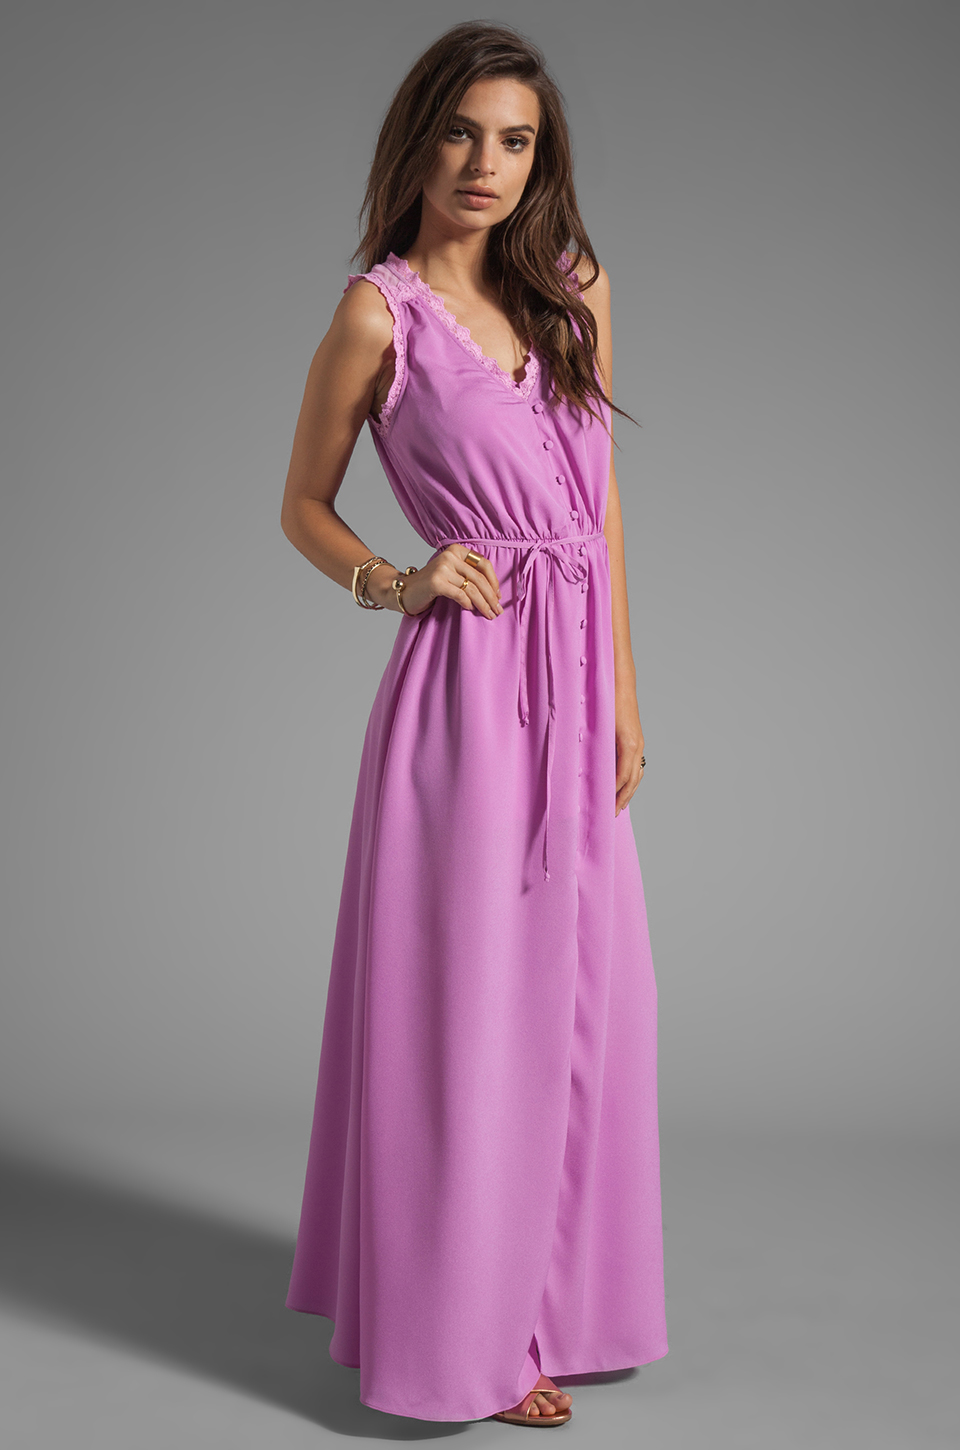 Ladakh Hidden Treasure Dress in Chalk Pink